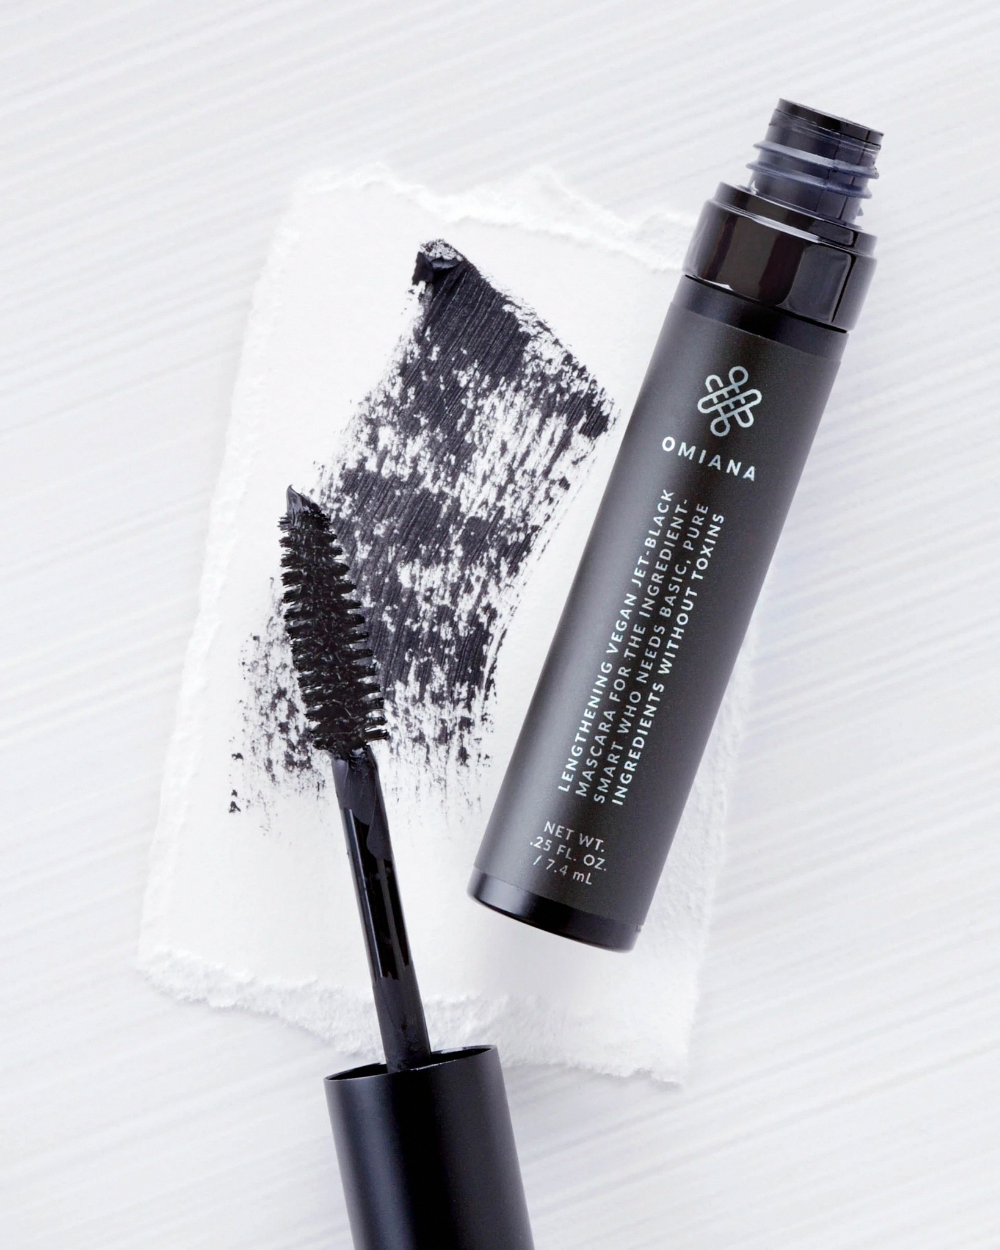 Vegan Black Lengthening Mascara No Mica, Titanium